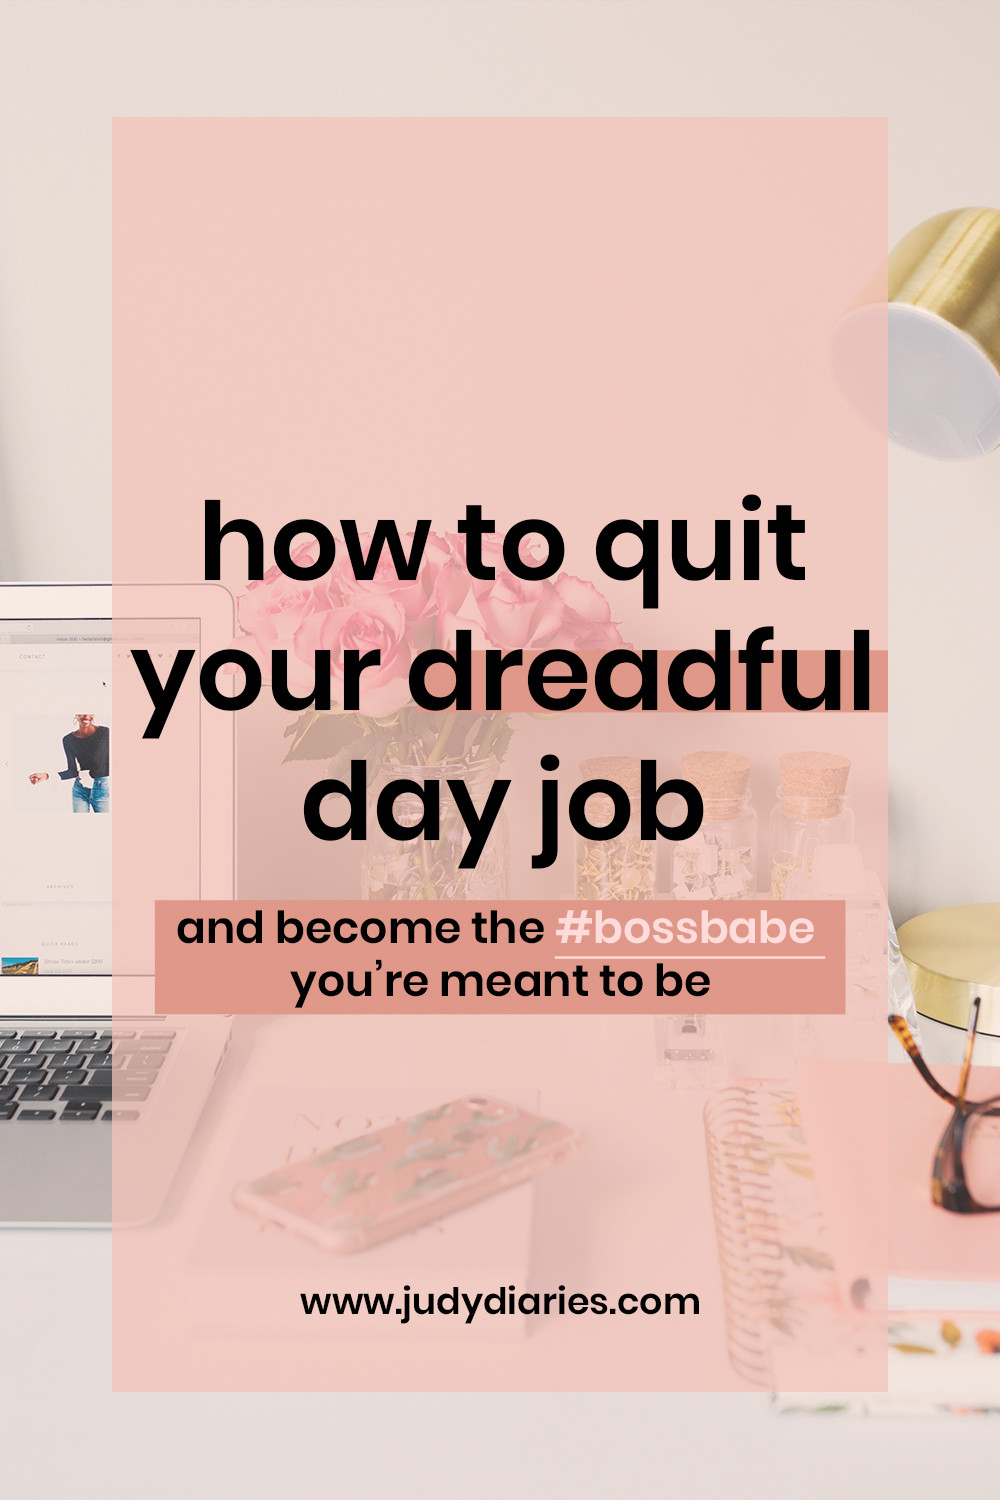 how to be a boss babe, should I start my own business, should I quit my day job